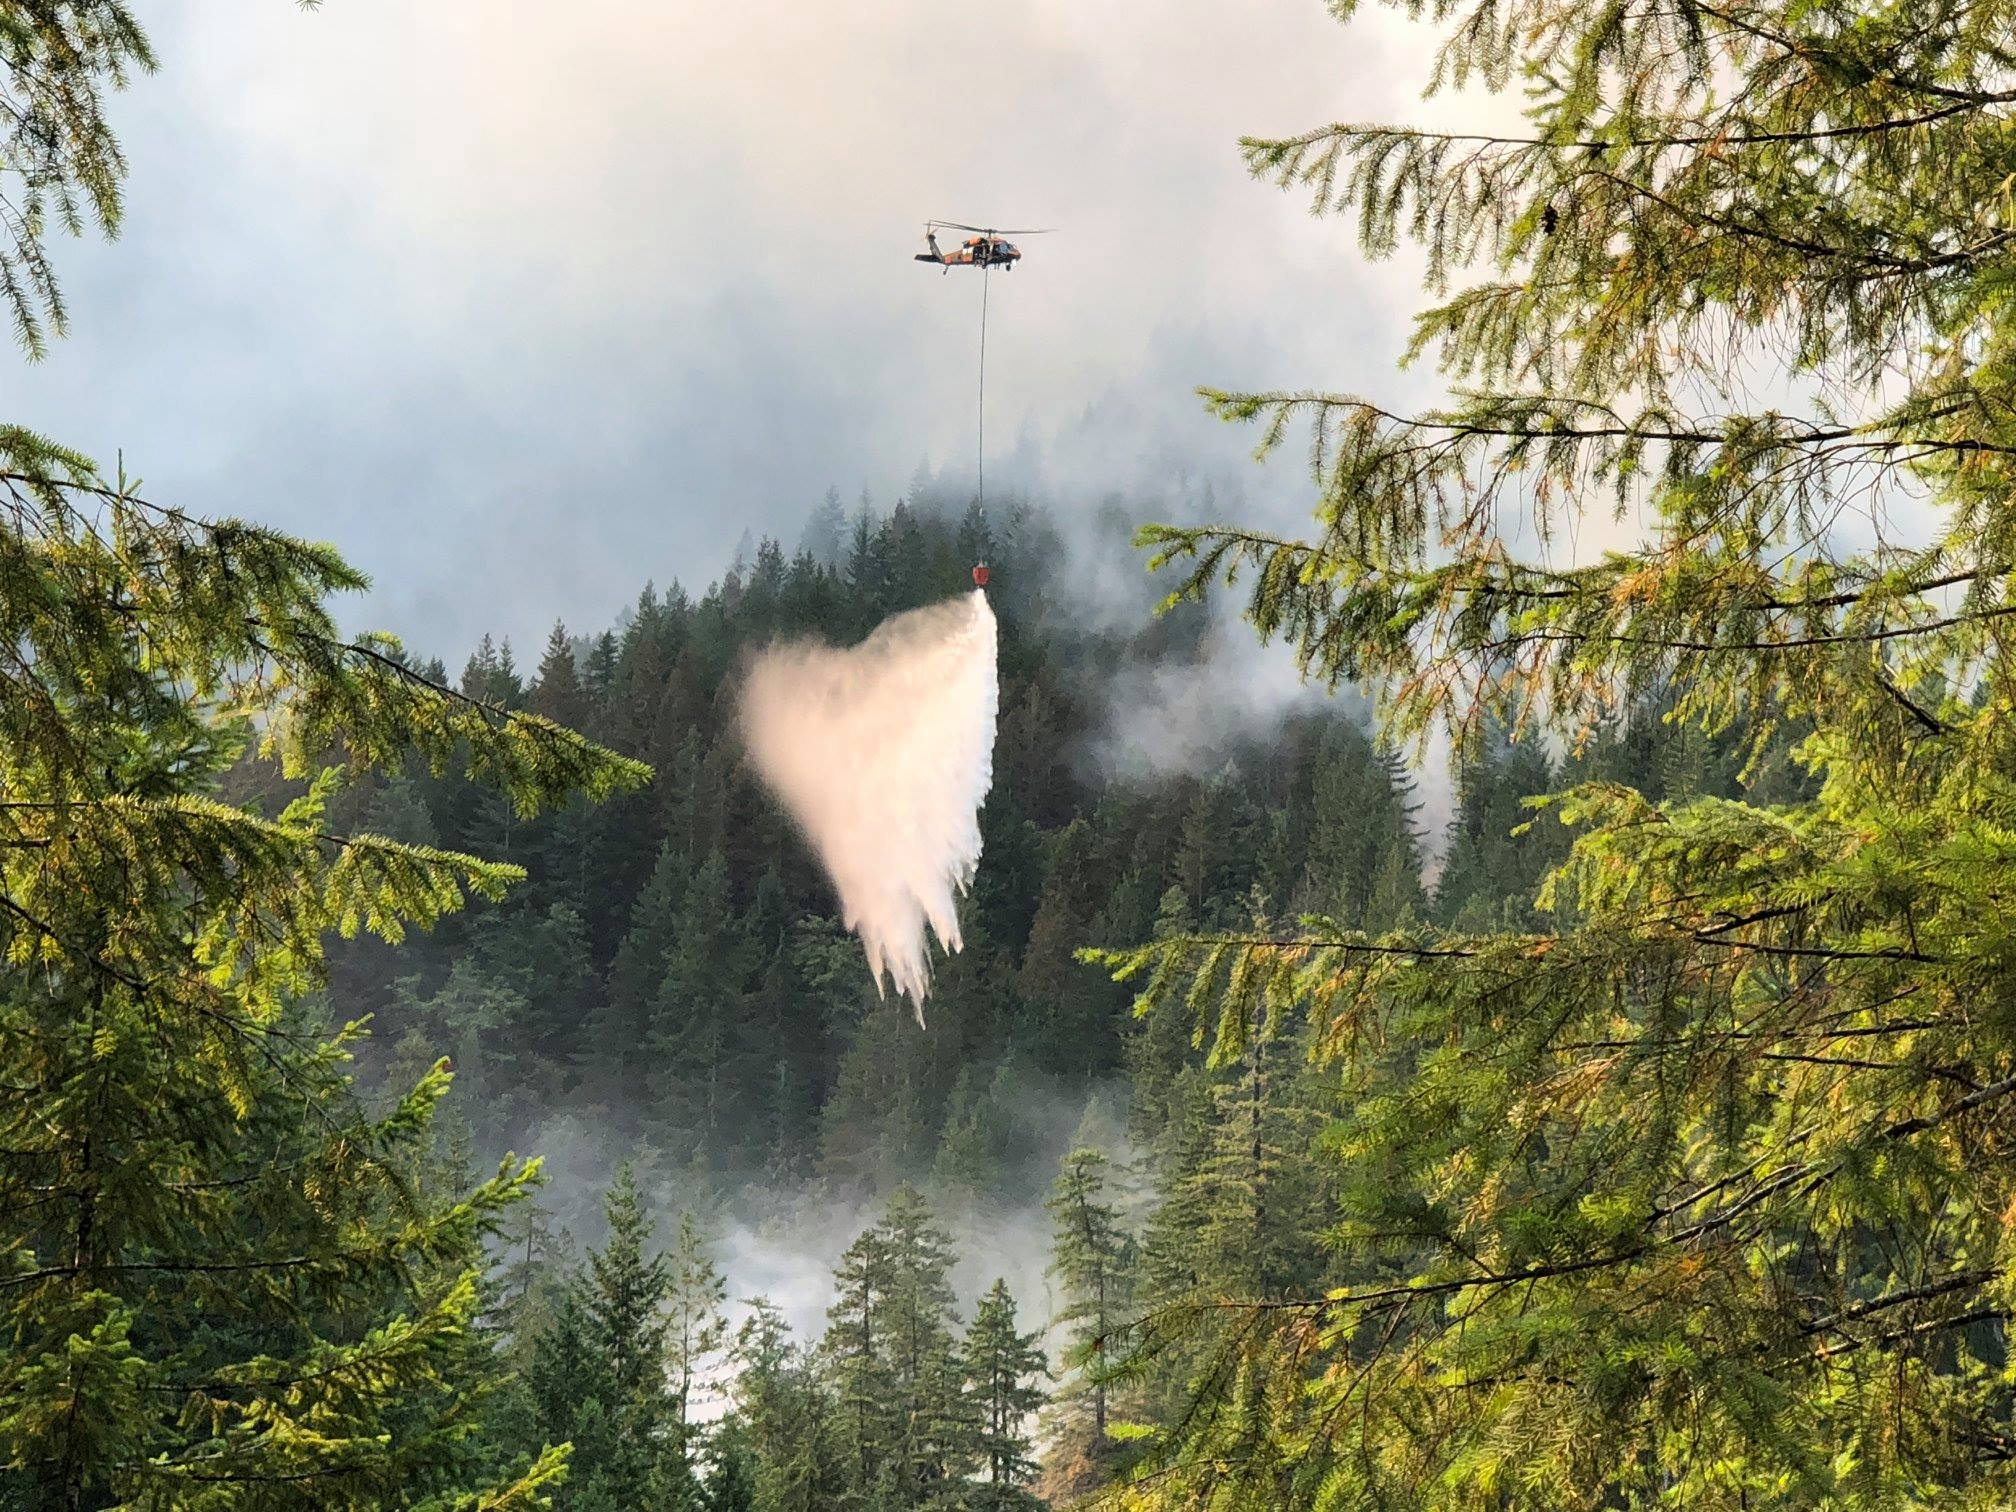 Helicopter dropping water on the Maple Fire in the Olympic National Forest.